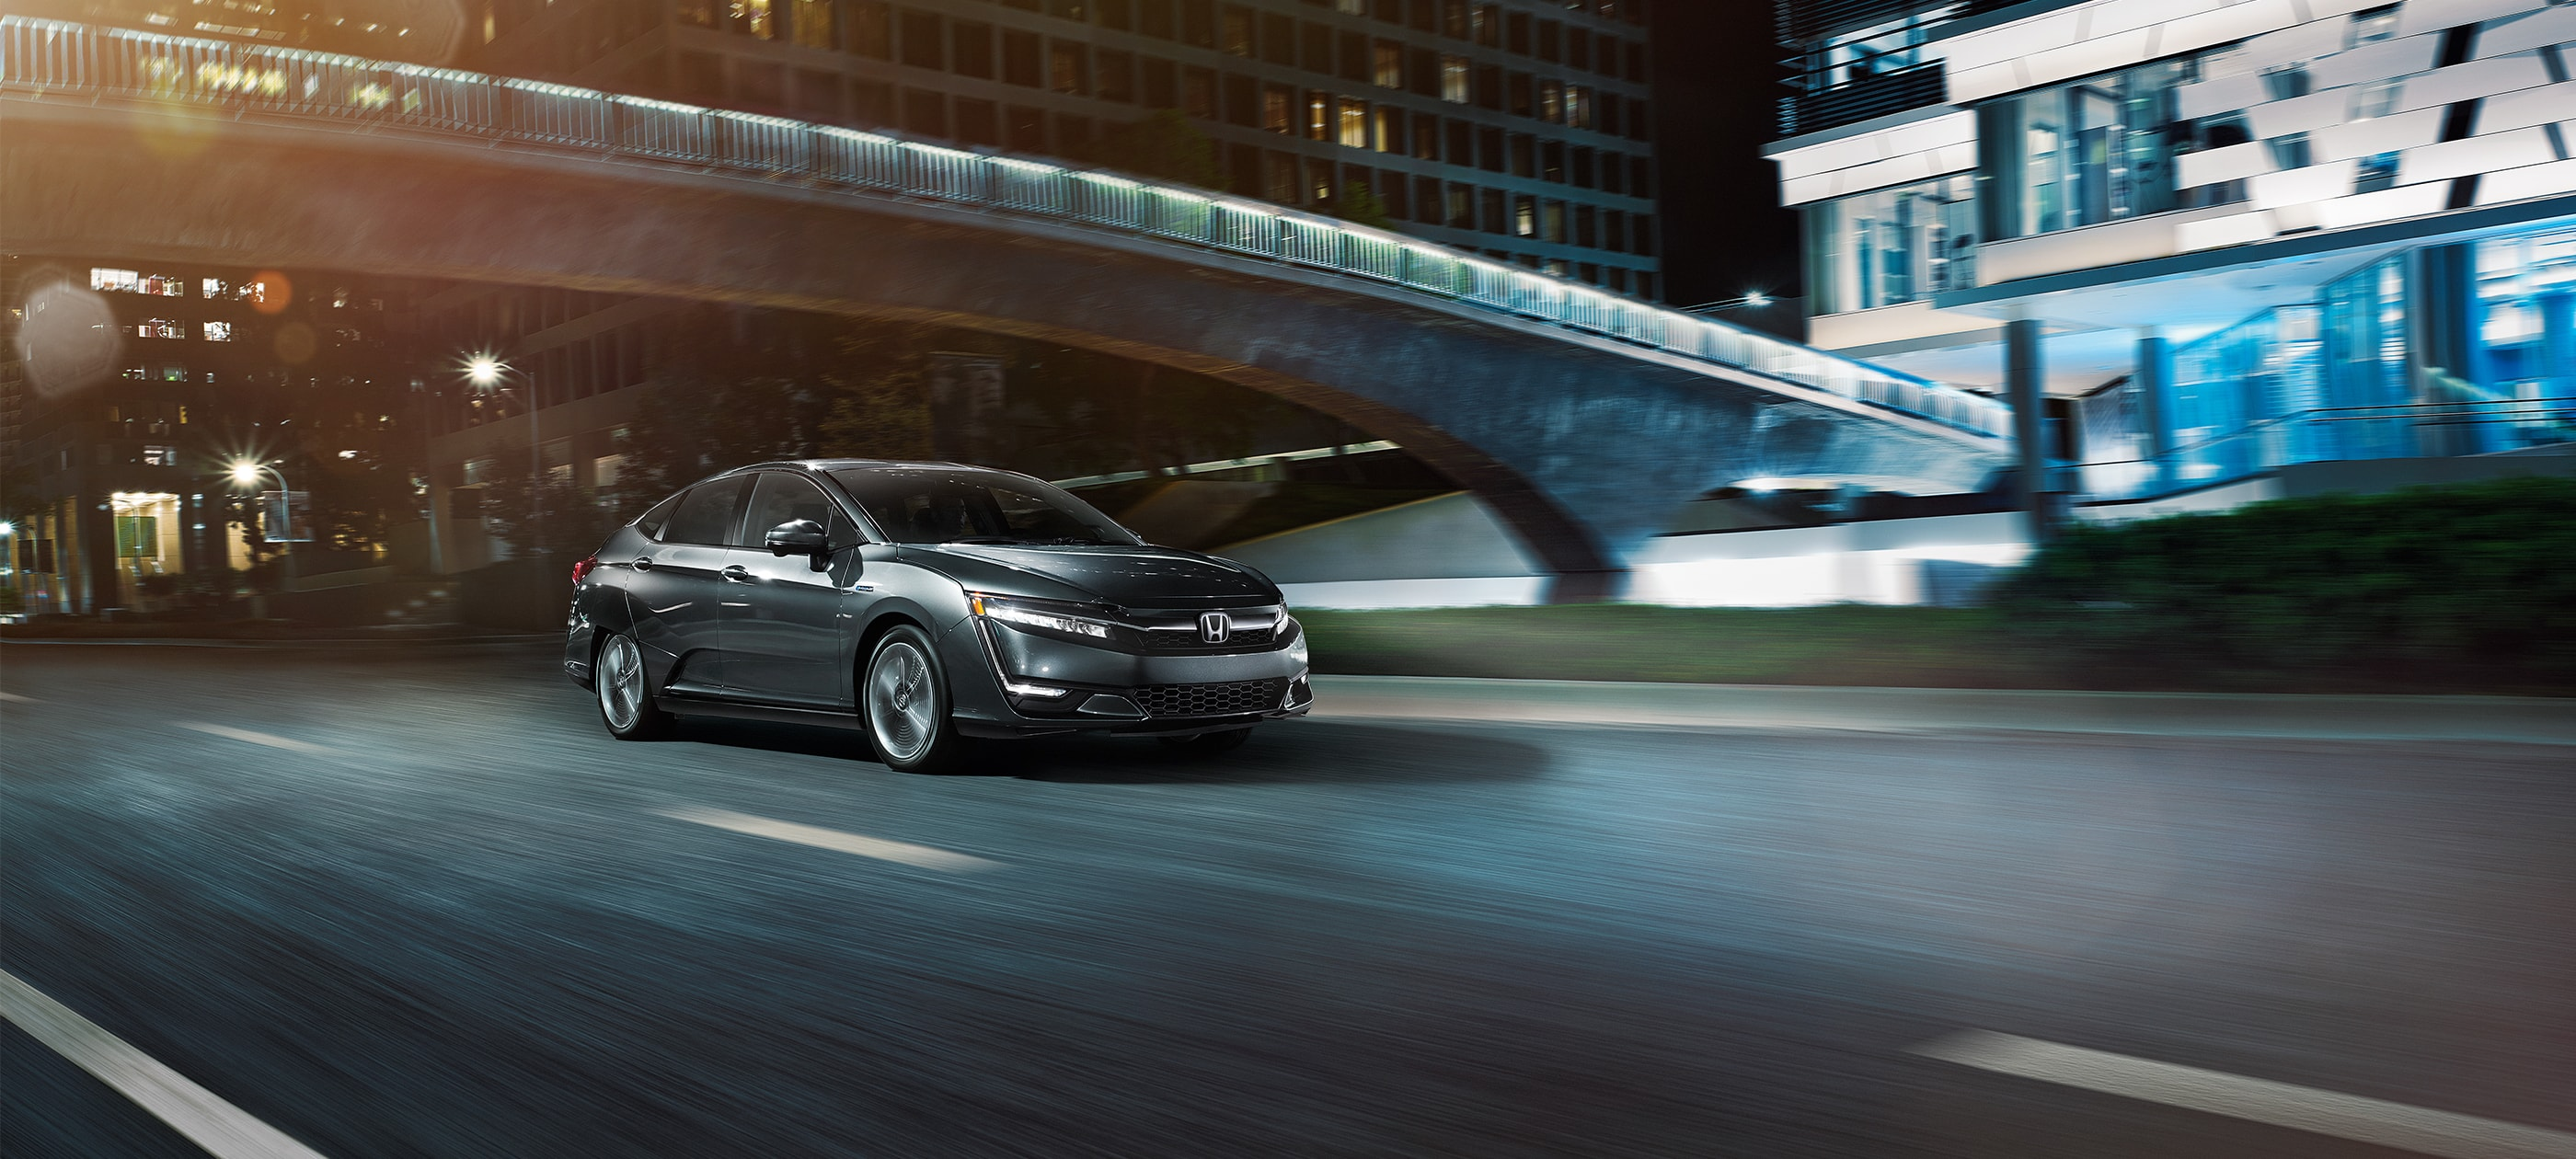 Front ¾ passenger-side view of 2019 Honda Clarity PHEV in Modern Steel Metallic driving on city road at night.